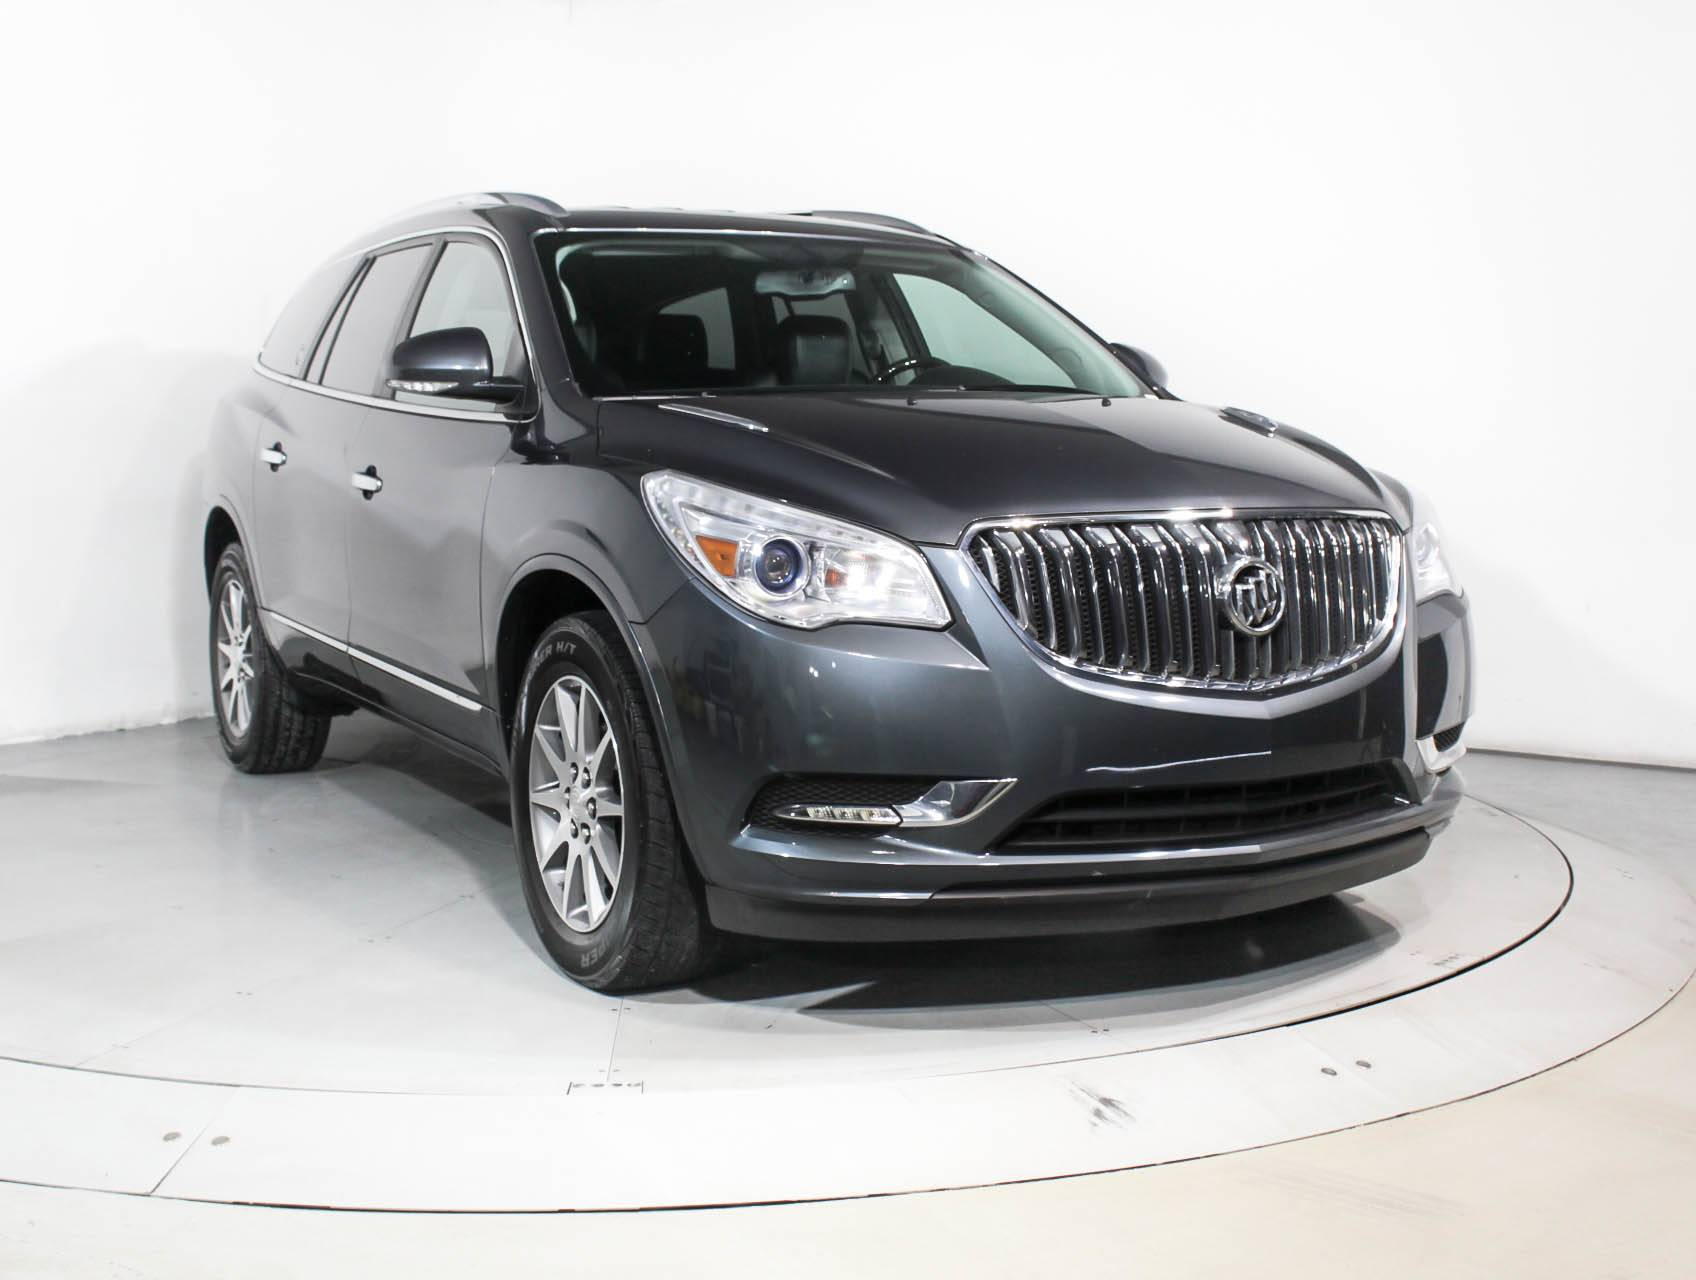 cars buick trend enclave front reviews rating fwd and convenience motor suv angular